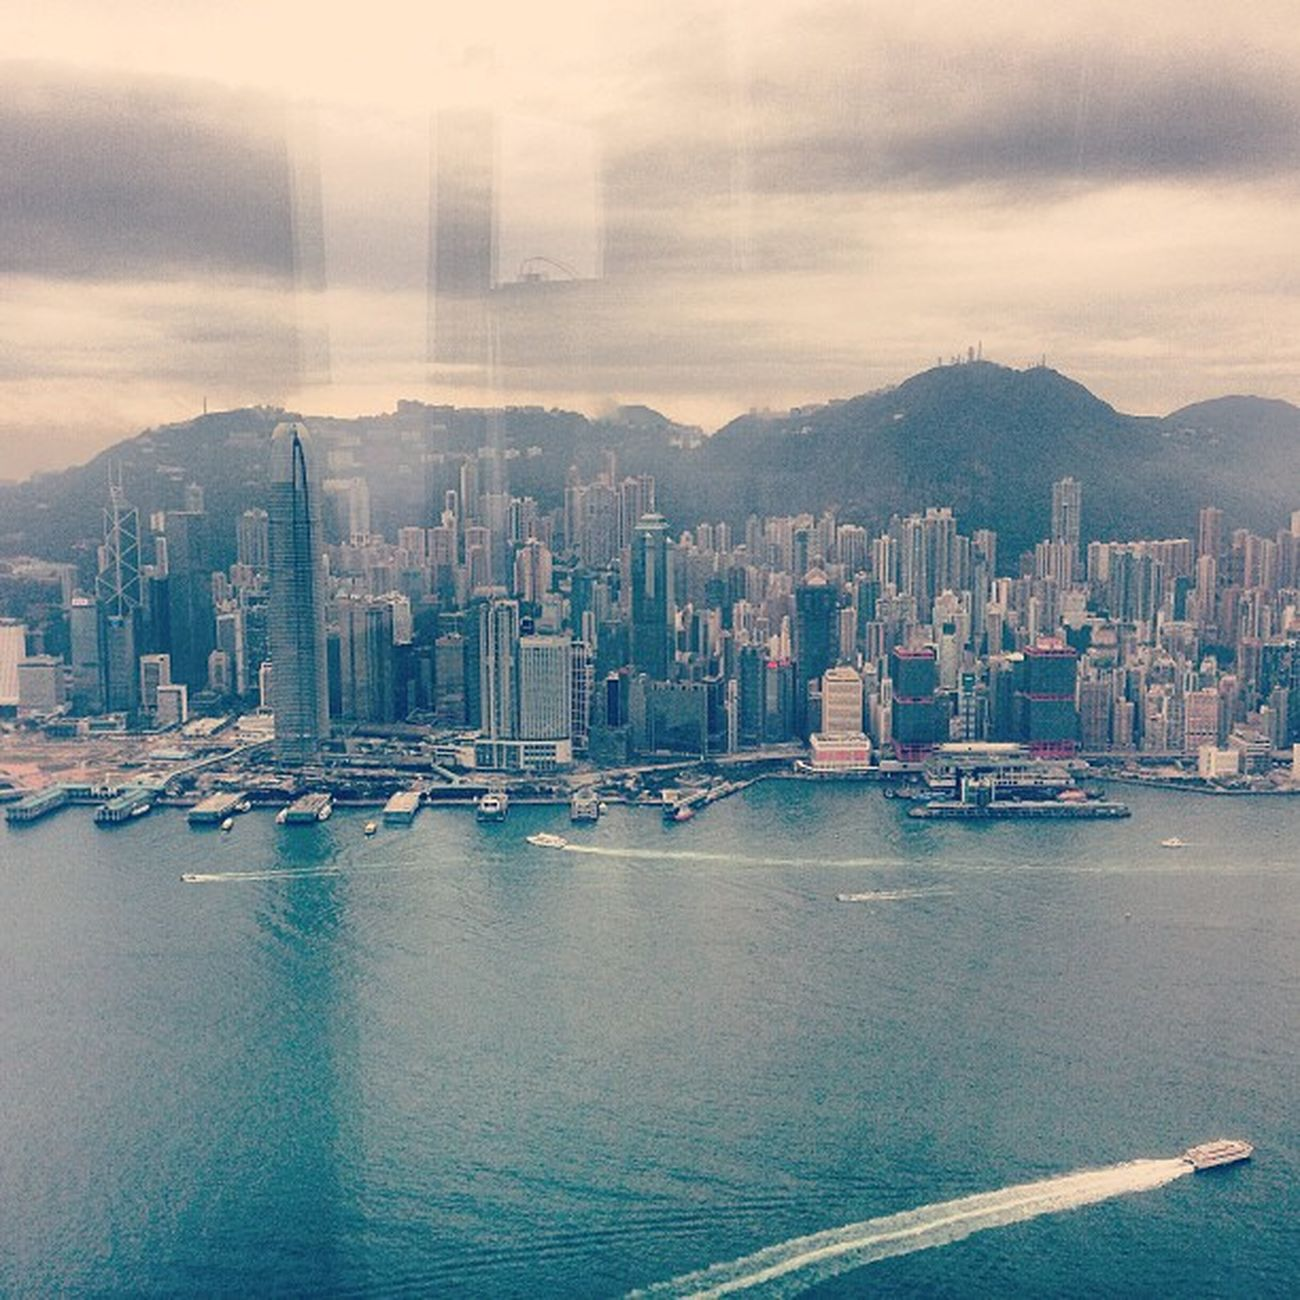 Absolute amazing view from the top of the highest building in town. #Sky100 with its 409m and the 360deg view over hong kong... wow!! #hkg #hongkong #vistoriapeak #skyscraper #sky100 #hongkongbay #asia #central HongKong Skyscraper Central ASIA HKG Vistoriapeak Hongkongbay Sky100